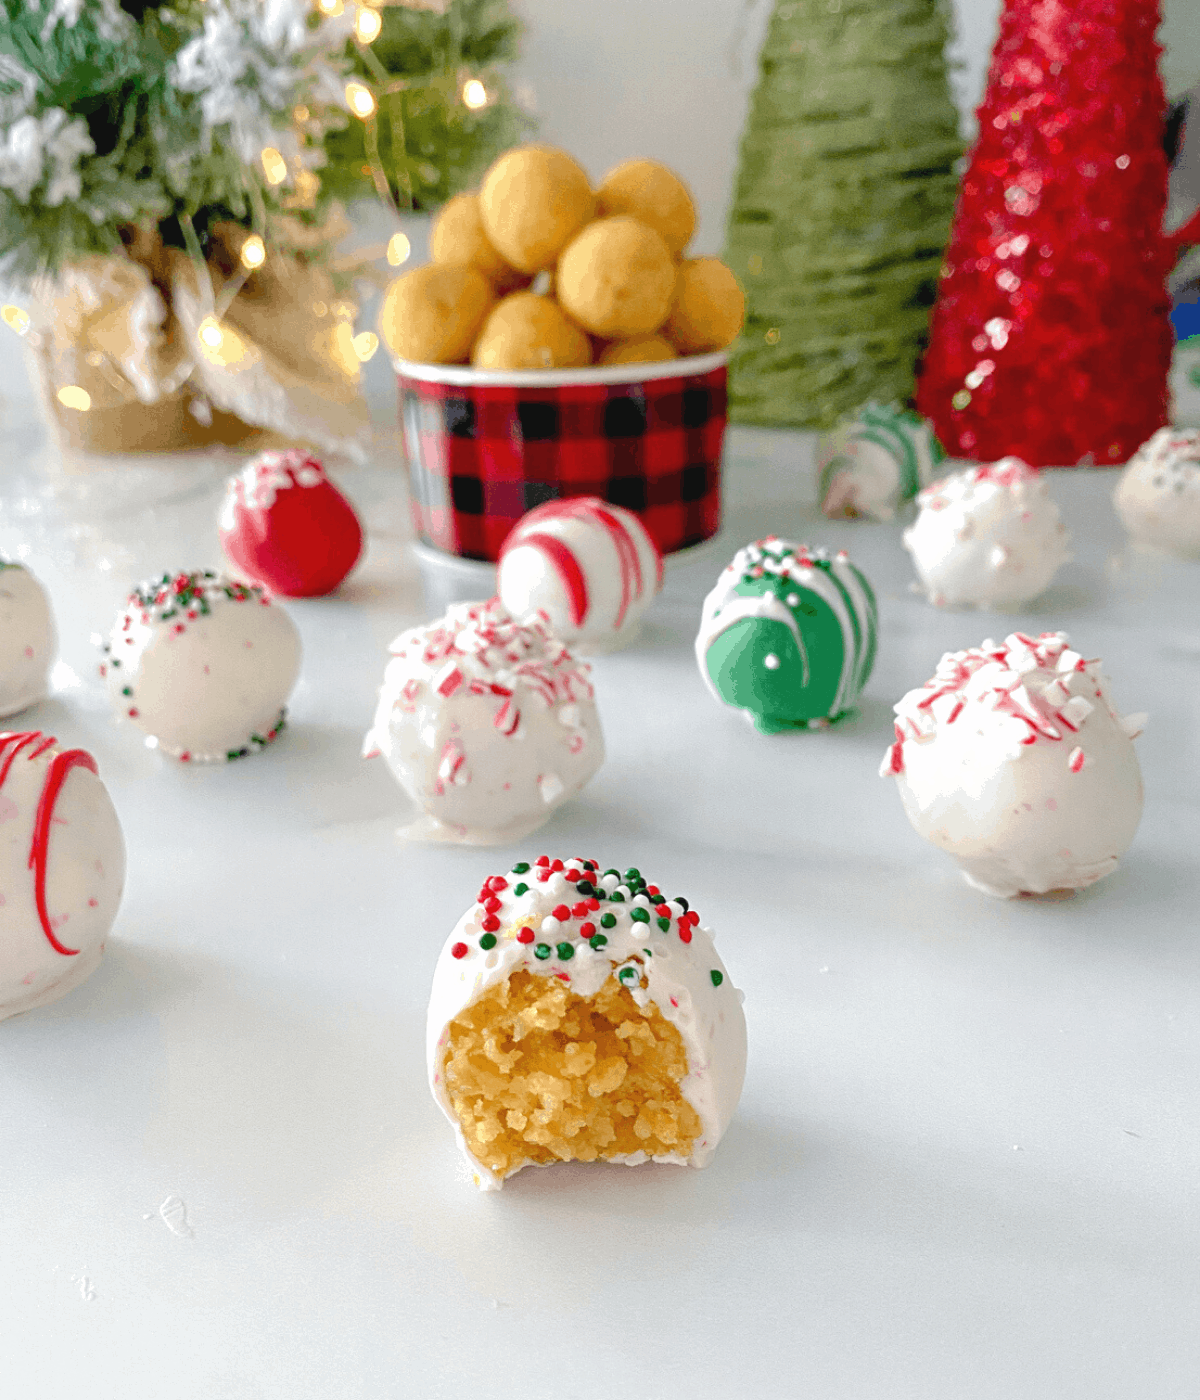 Christmas cake balls on a table coated in white chocolate candy melts with decorations in the background.